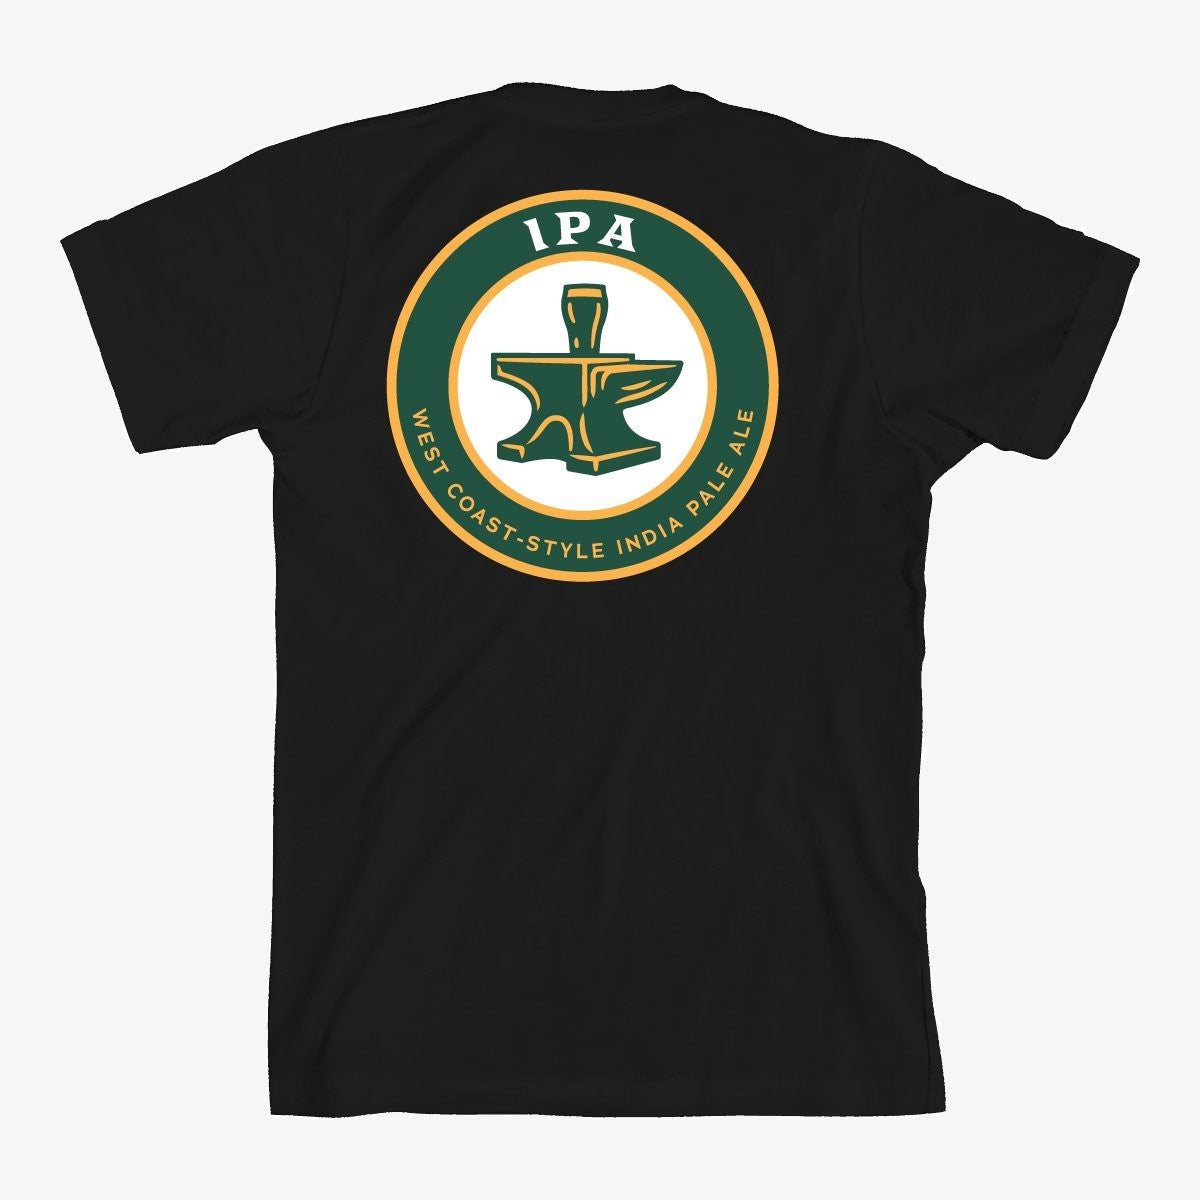 IPA T-Shirt - AleSmith Brewing Co.